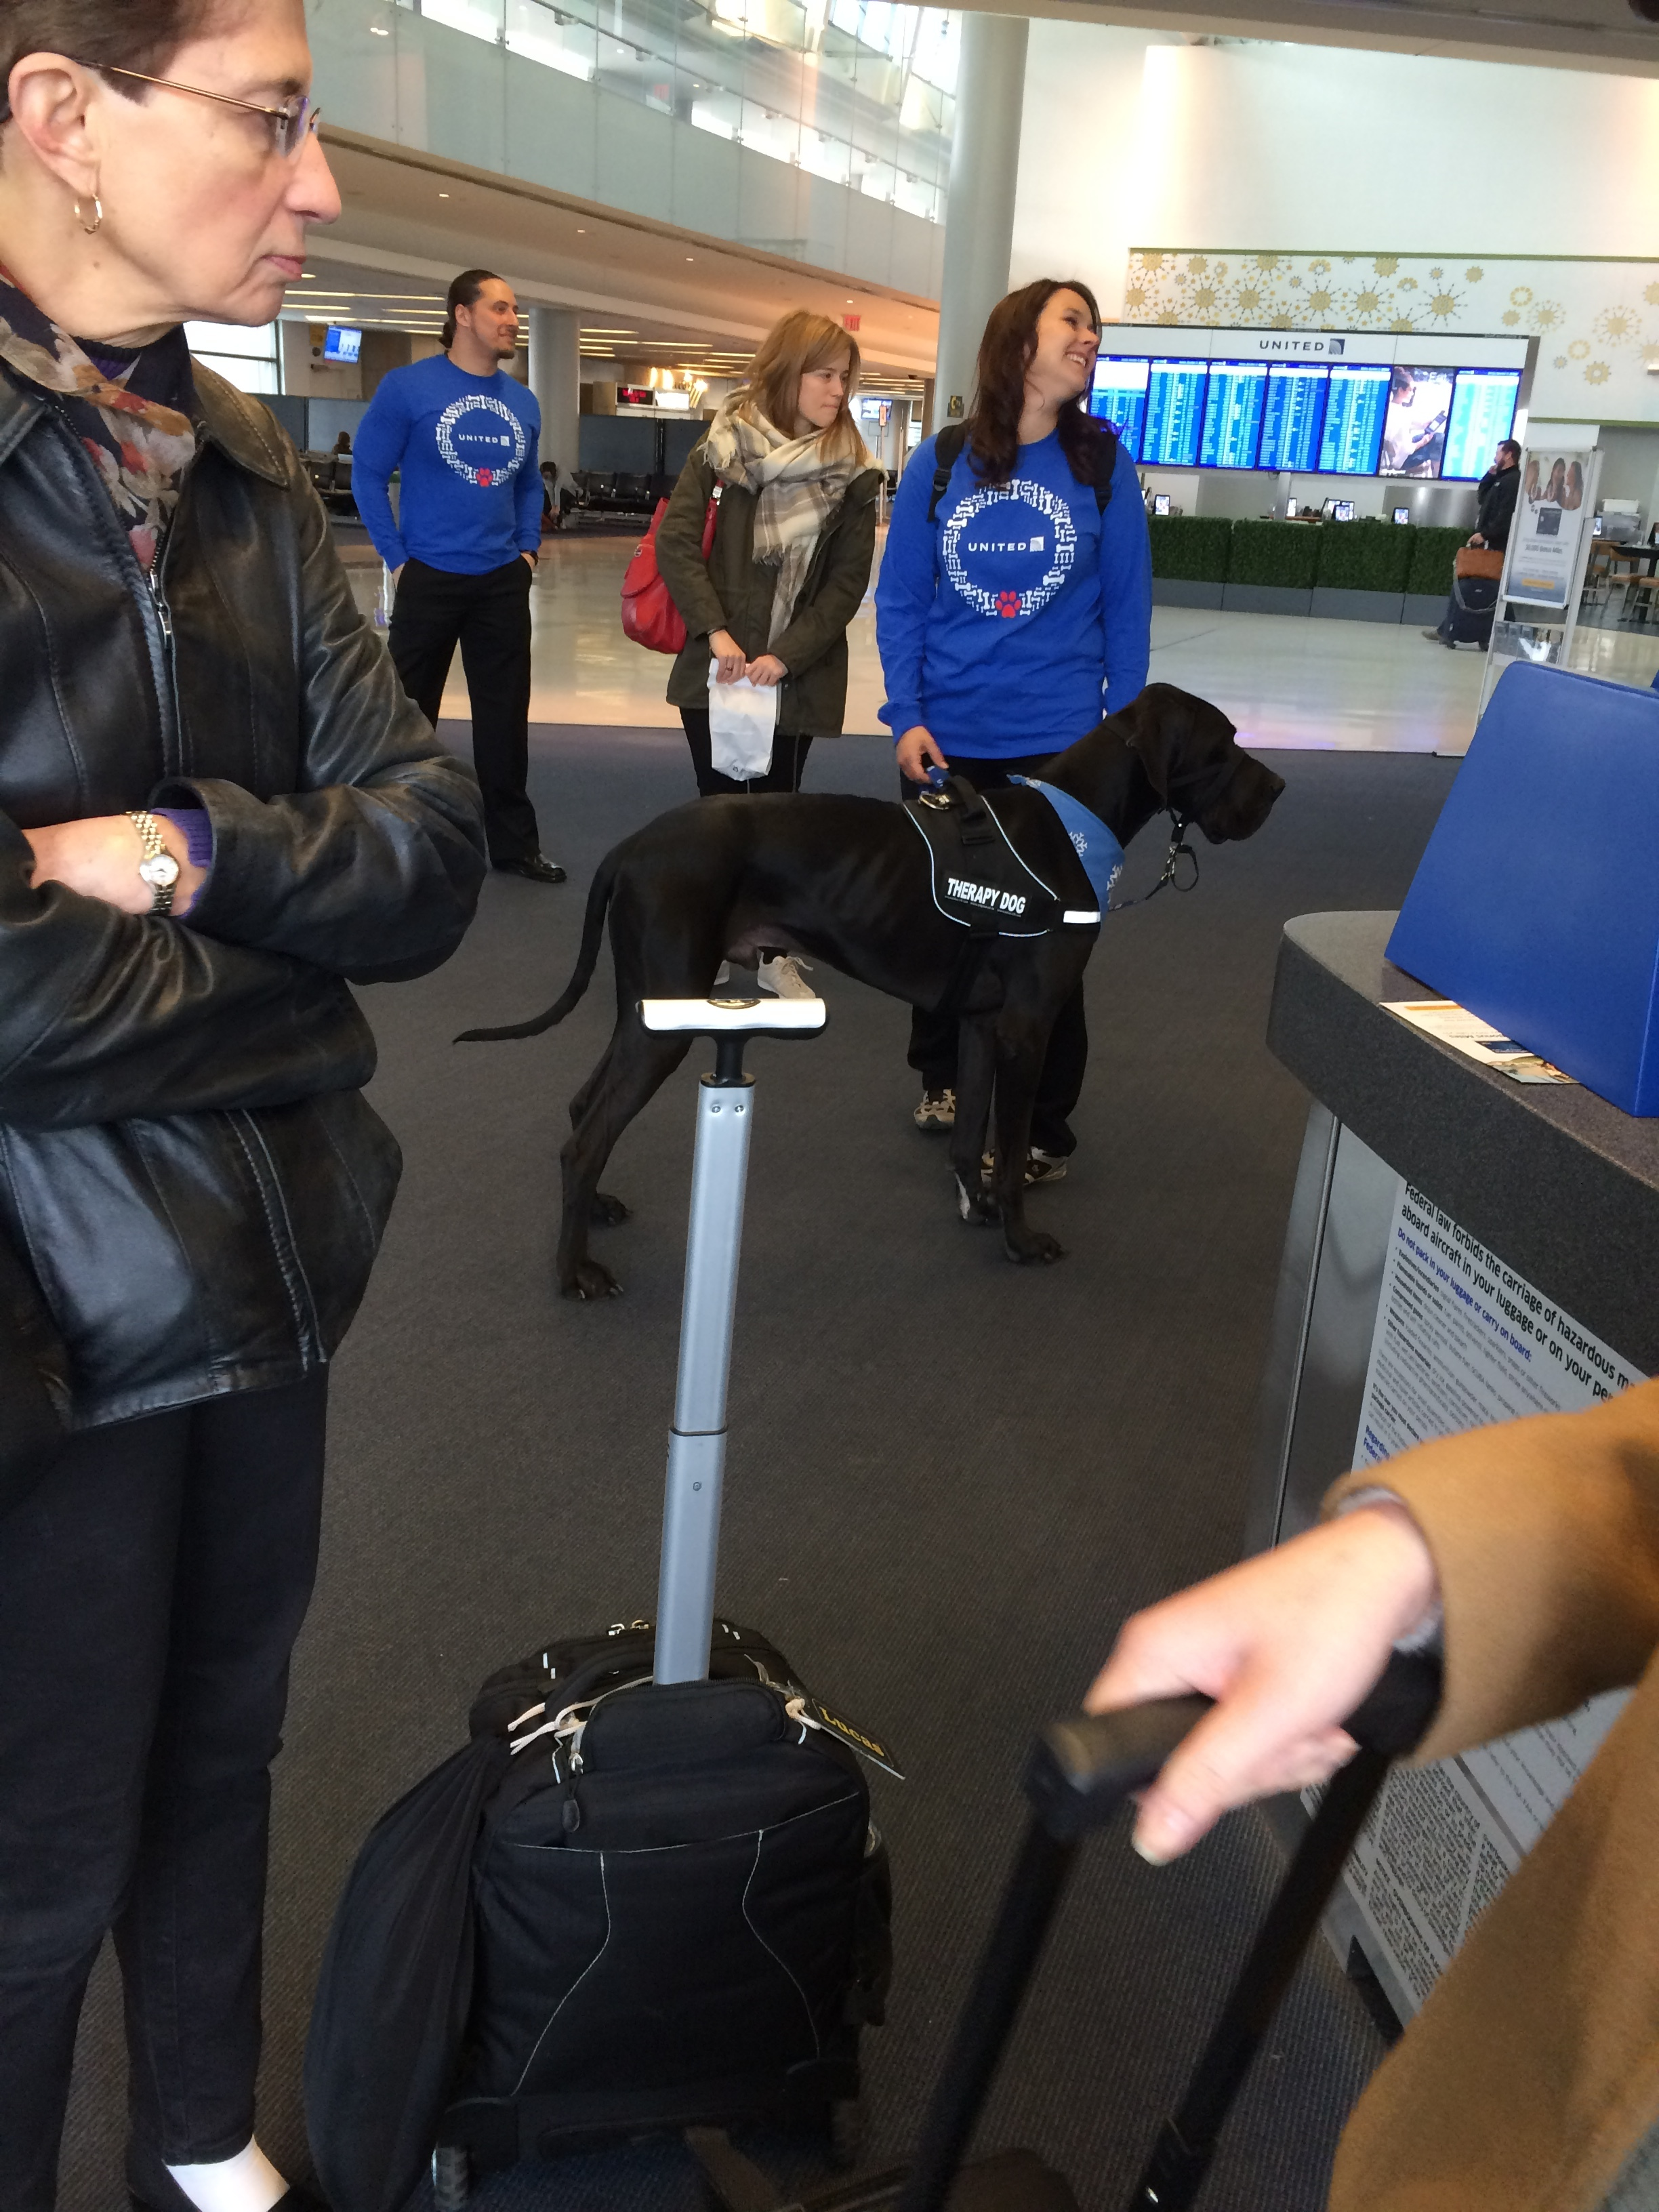 United bringing therapy dogs so we can cope with their delays